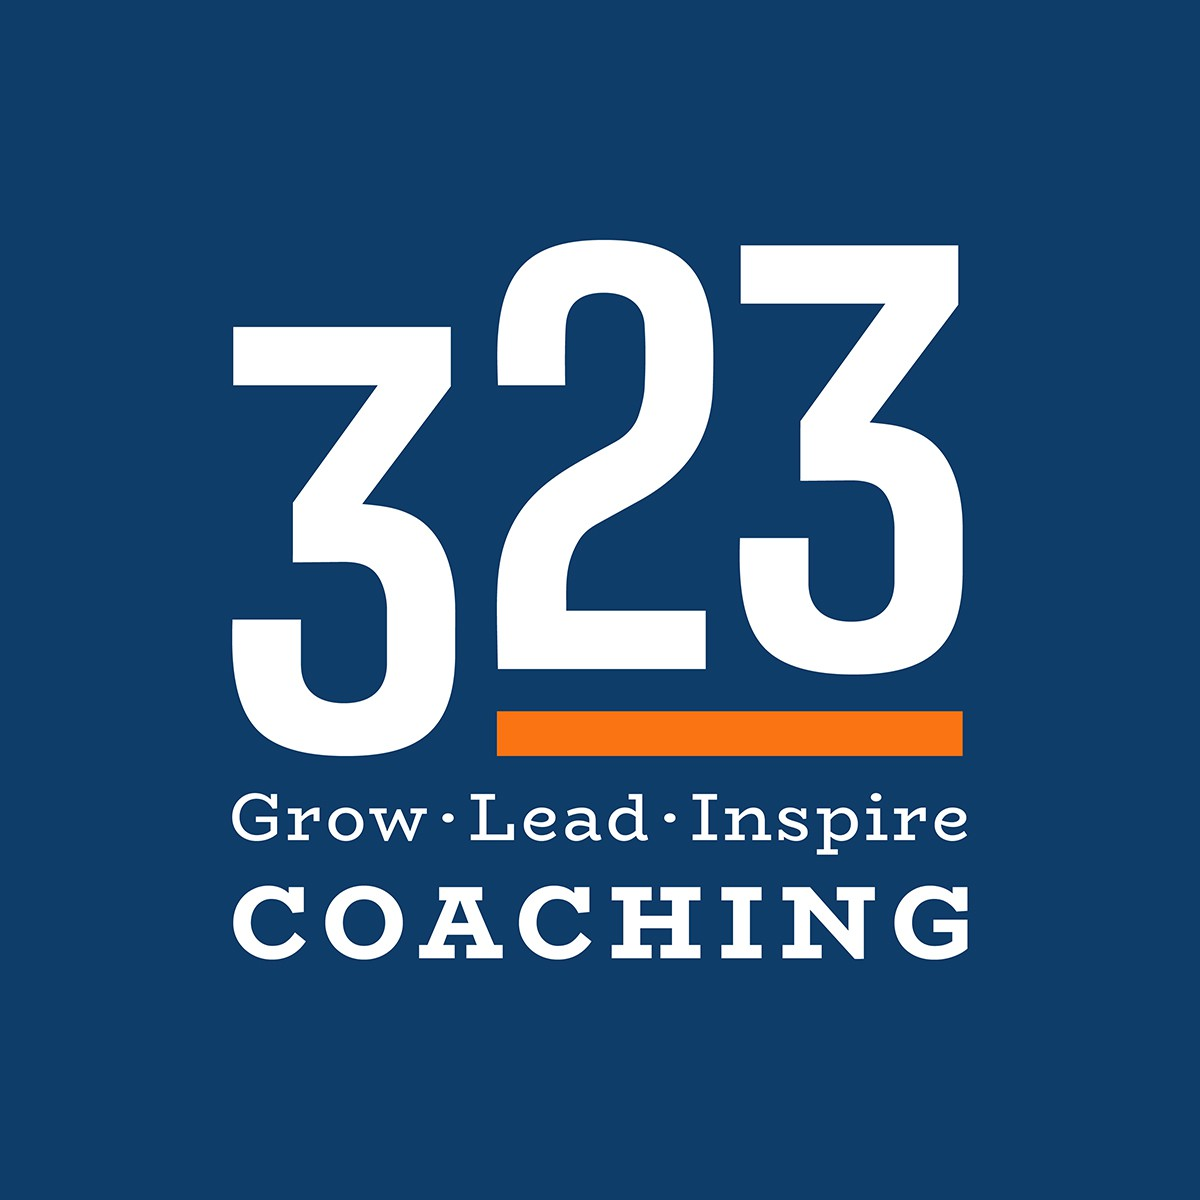 Unique, fresh, Powerful, leadership type logo for our leadership, life & business coaching